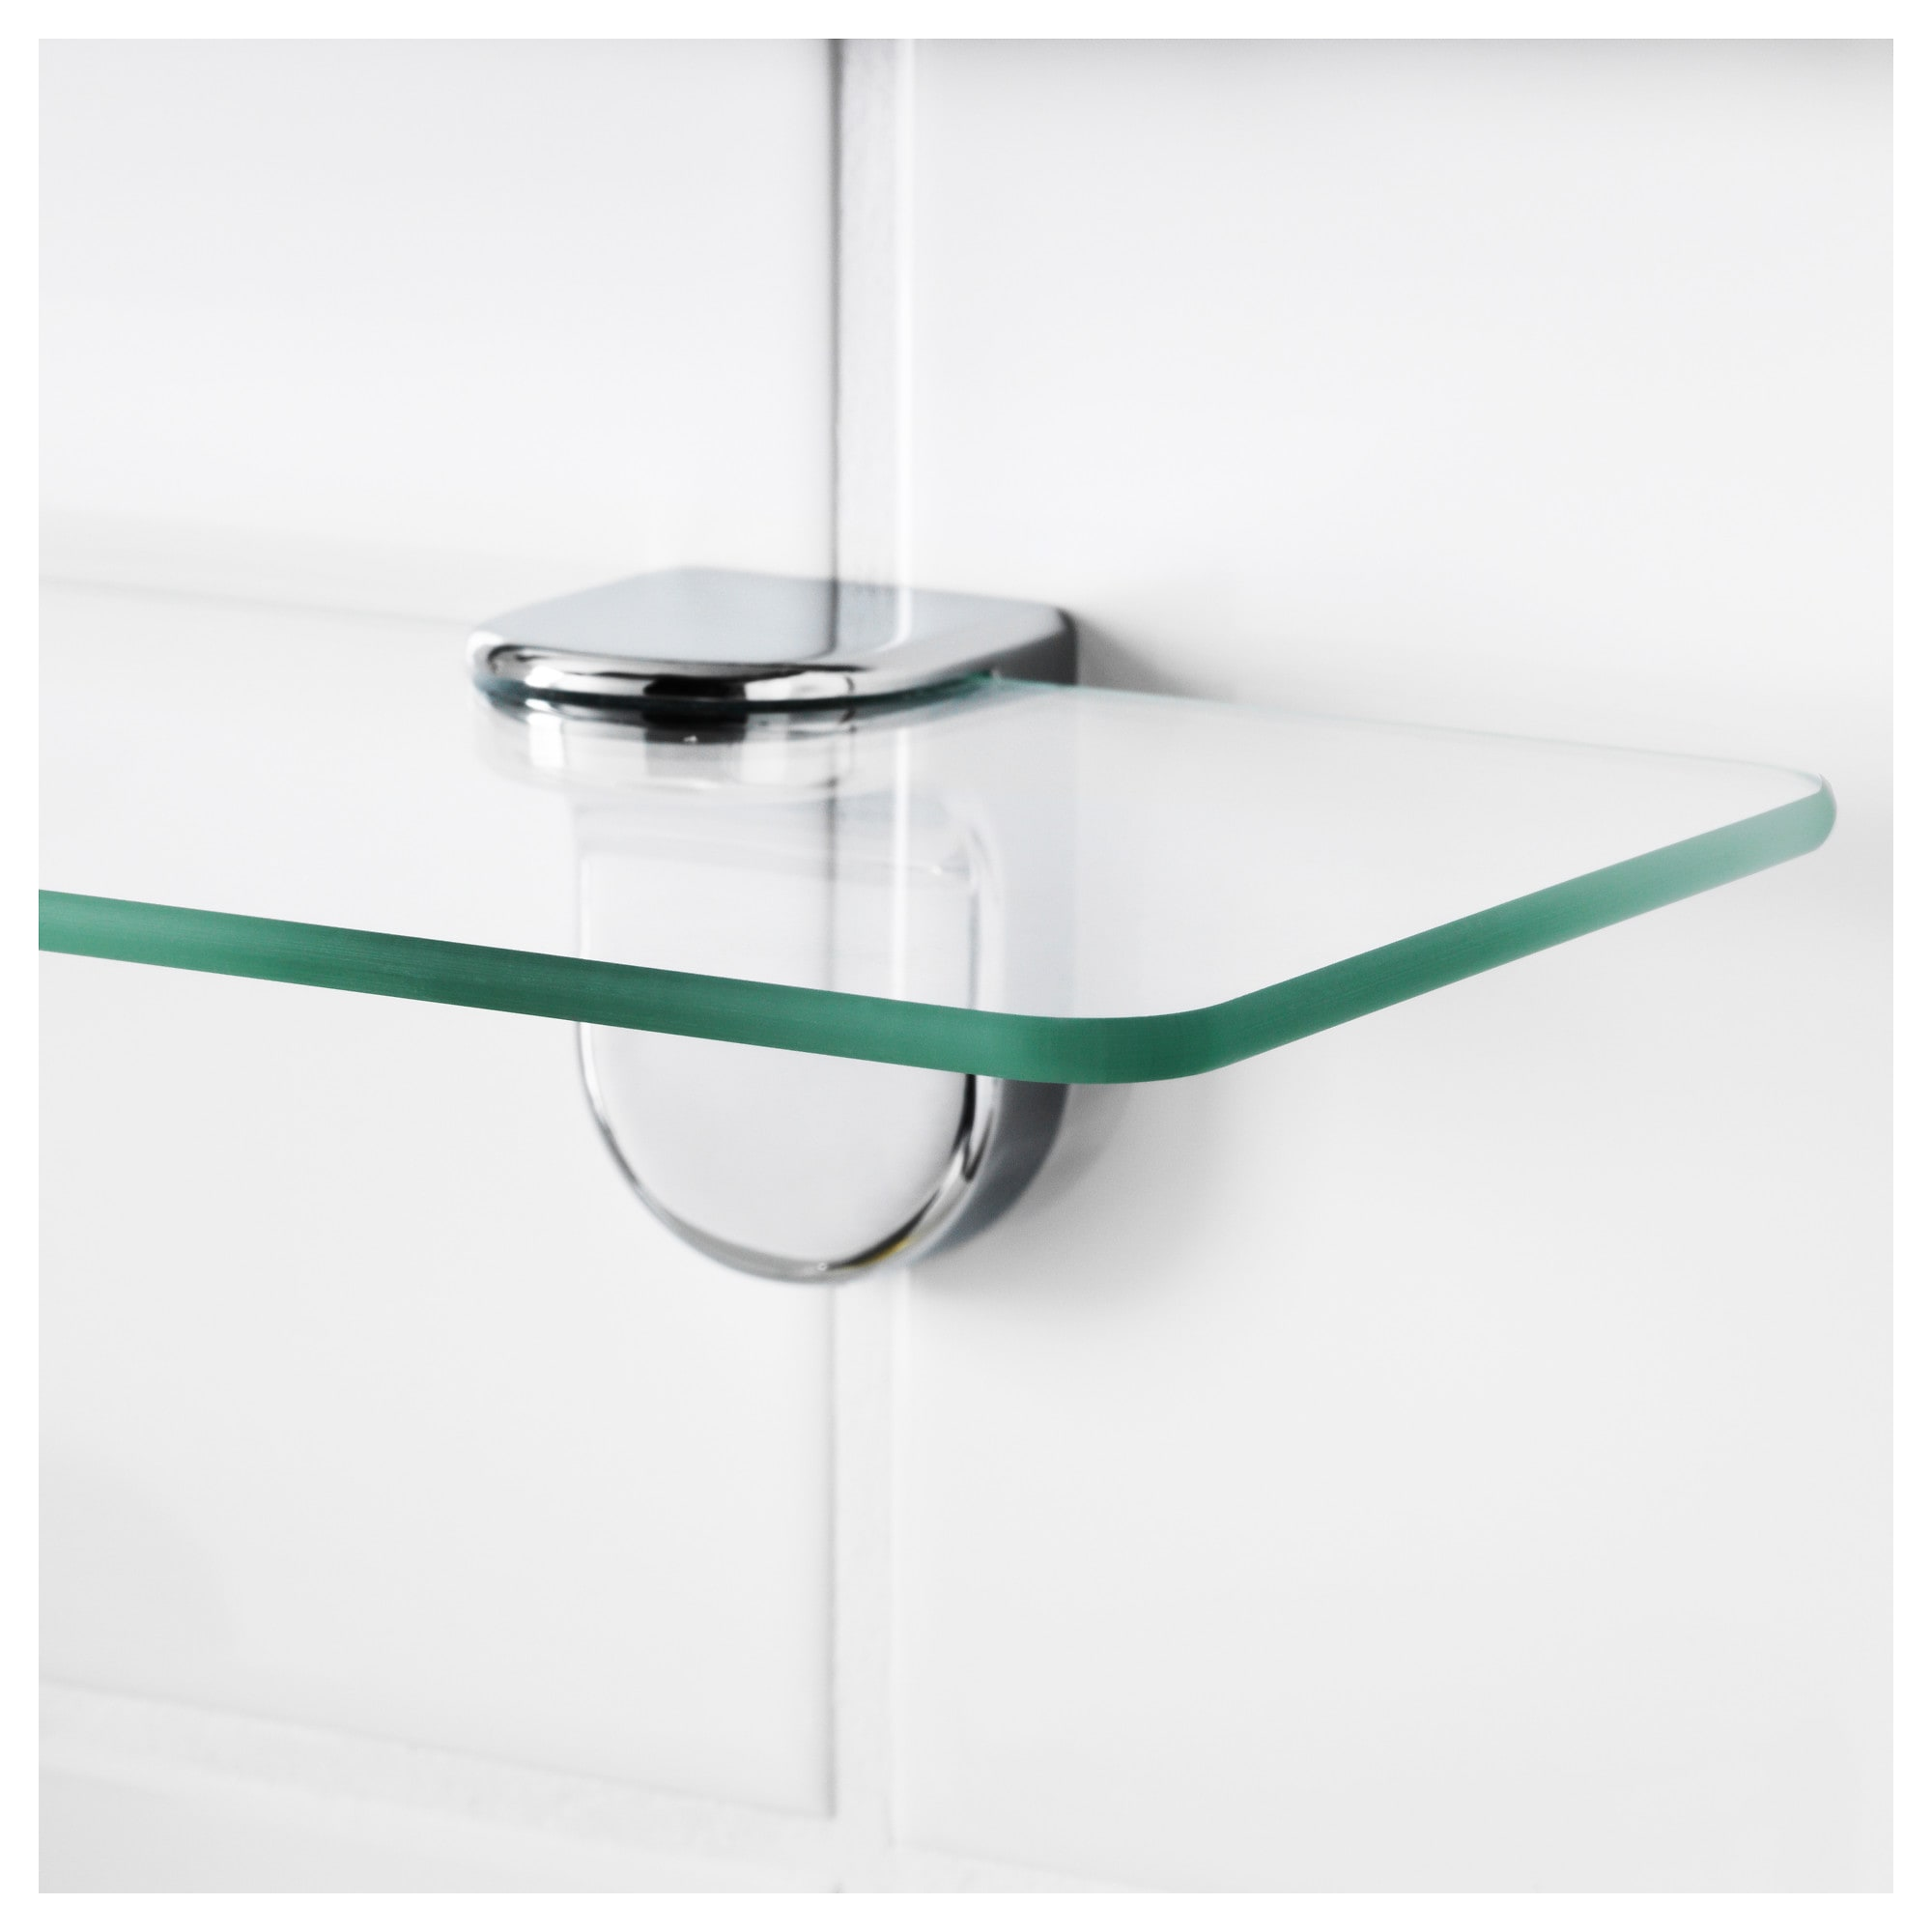 kalkgrund glass shelf